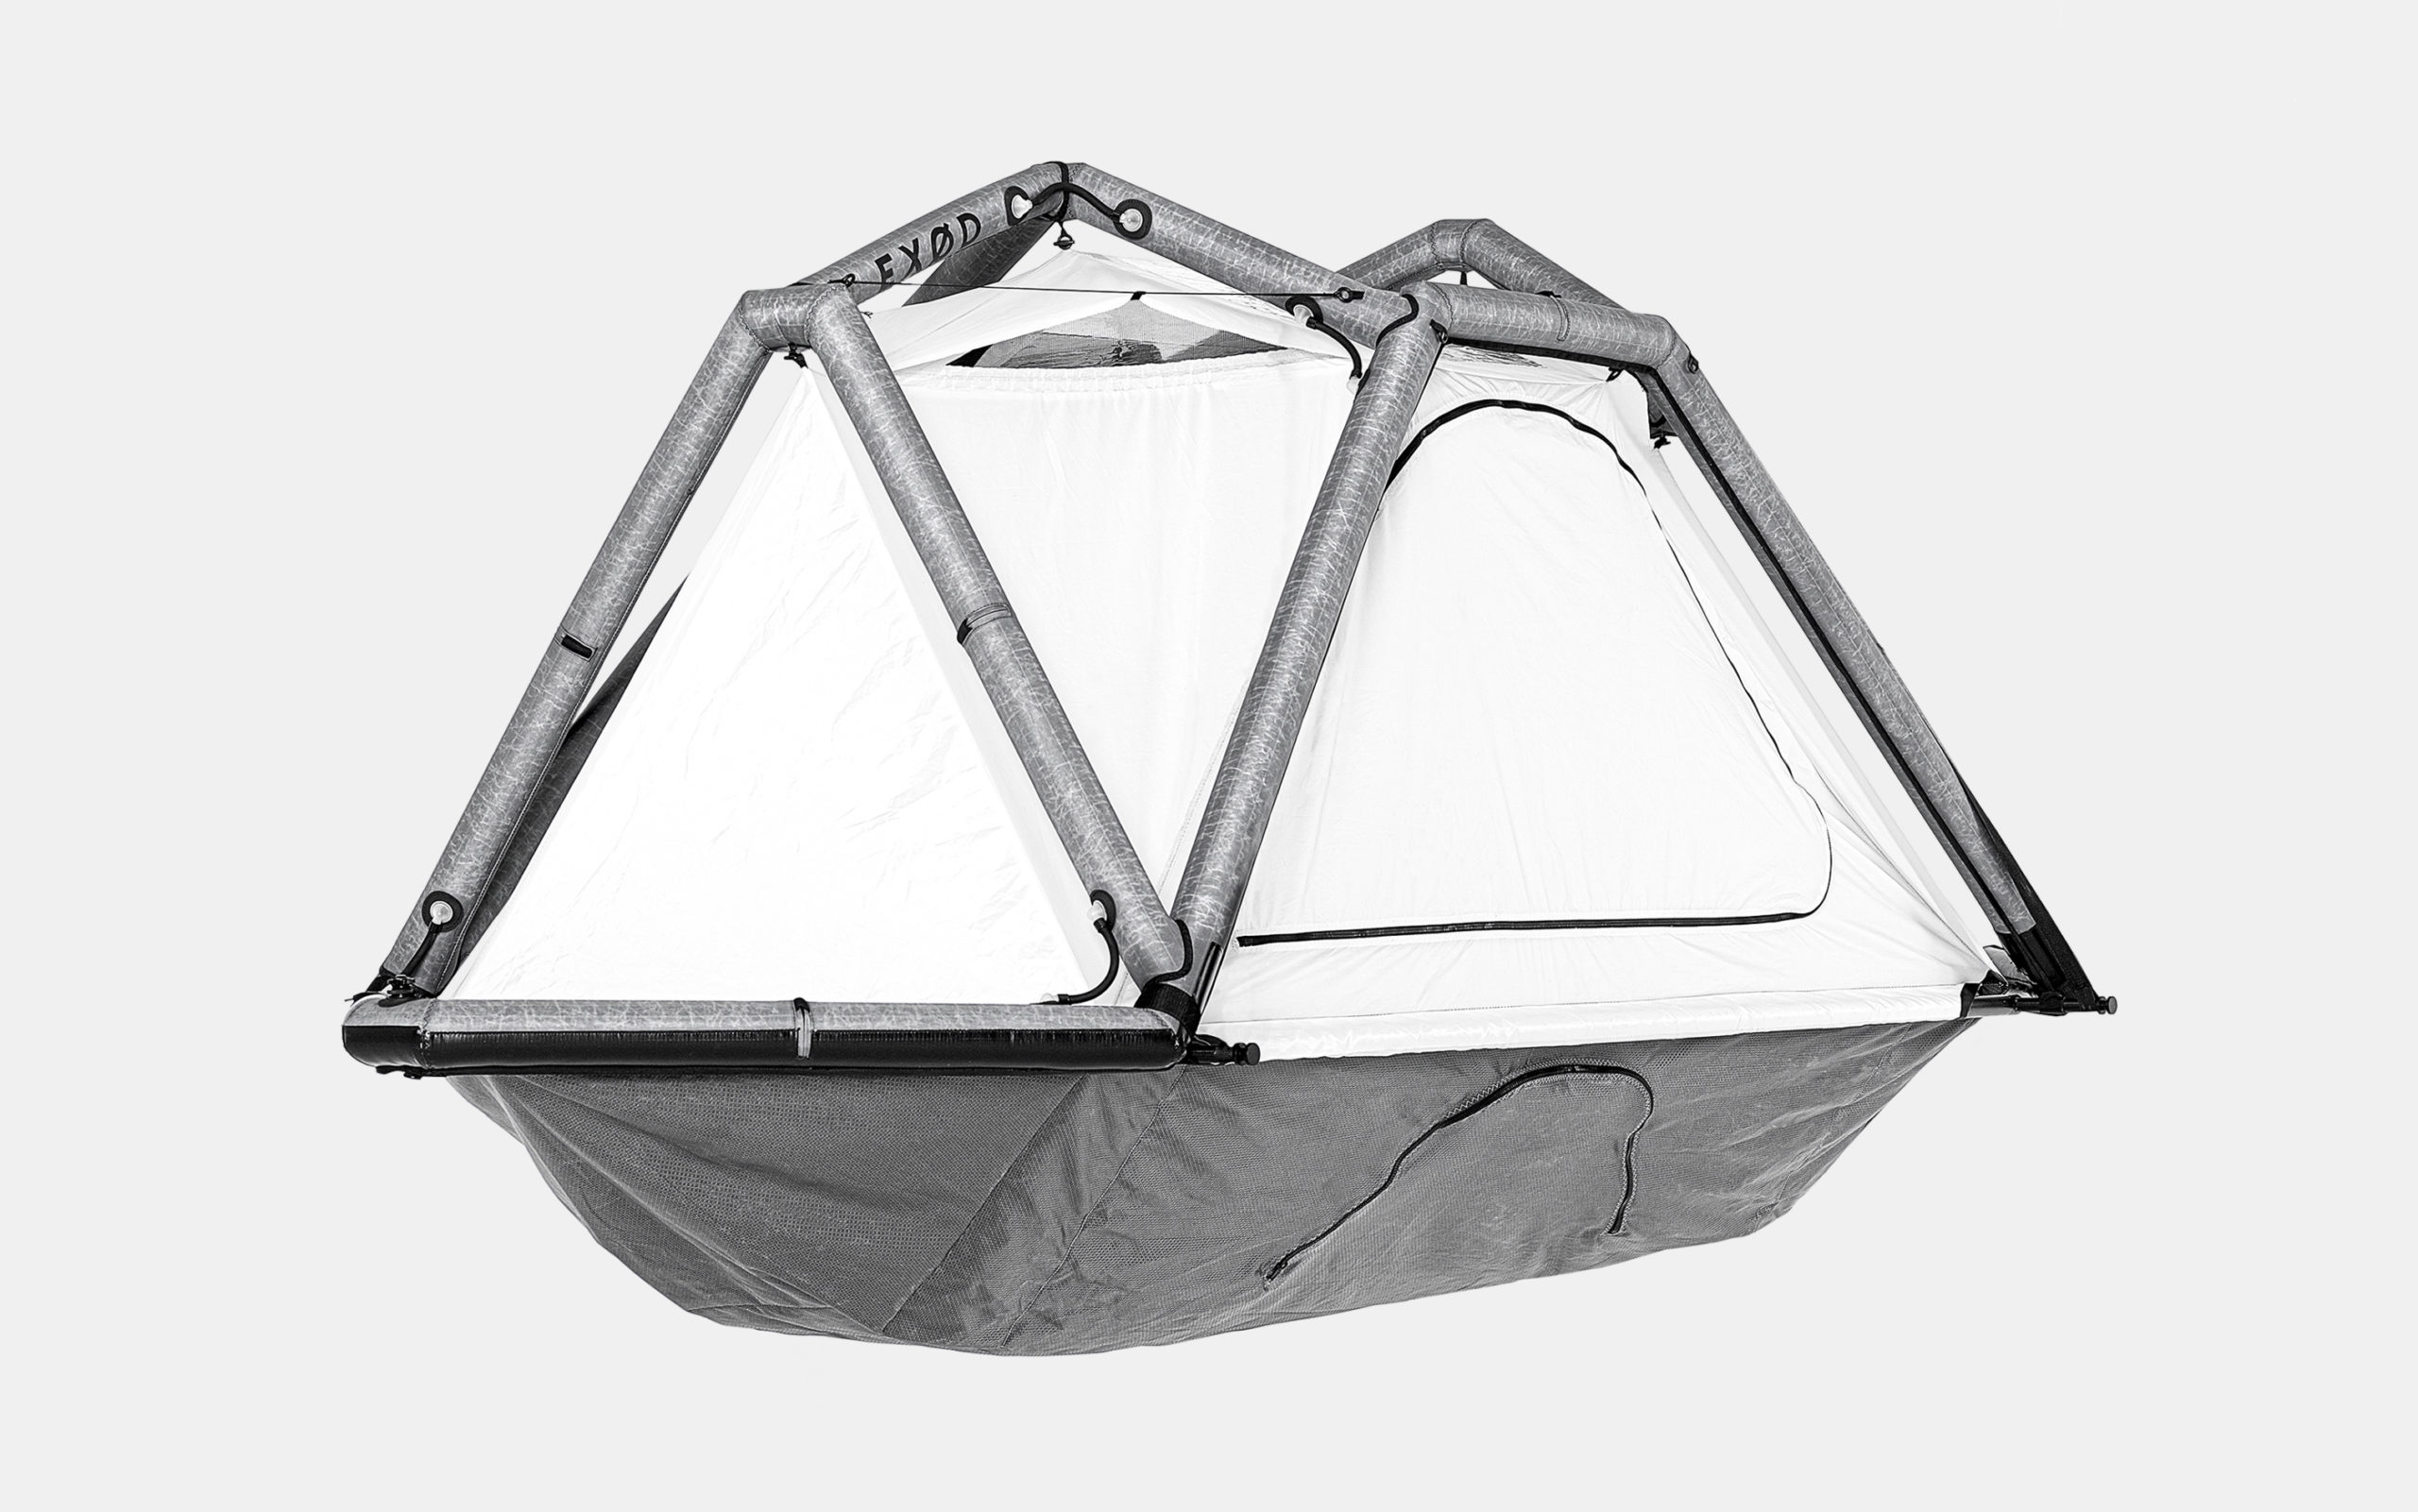 Exod ARK 3.1 Elevated Tent